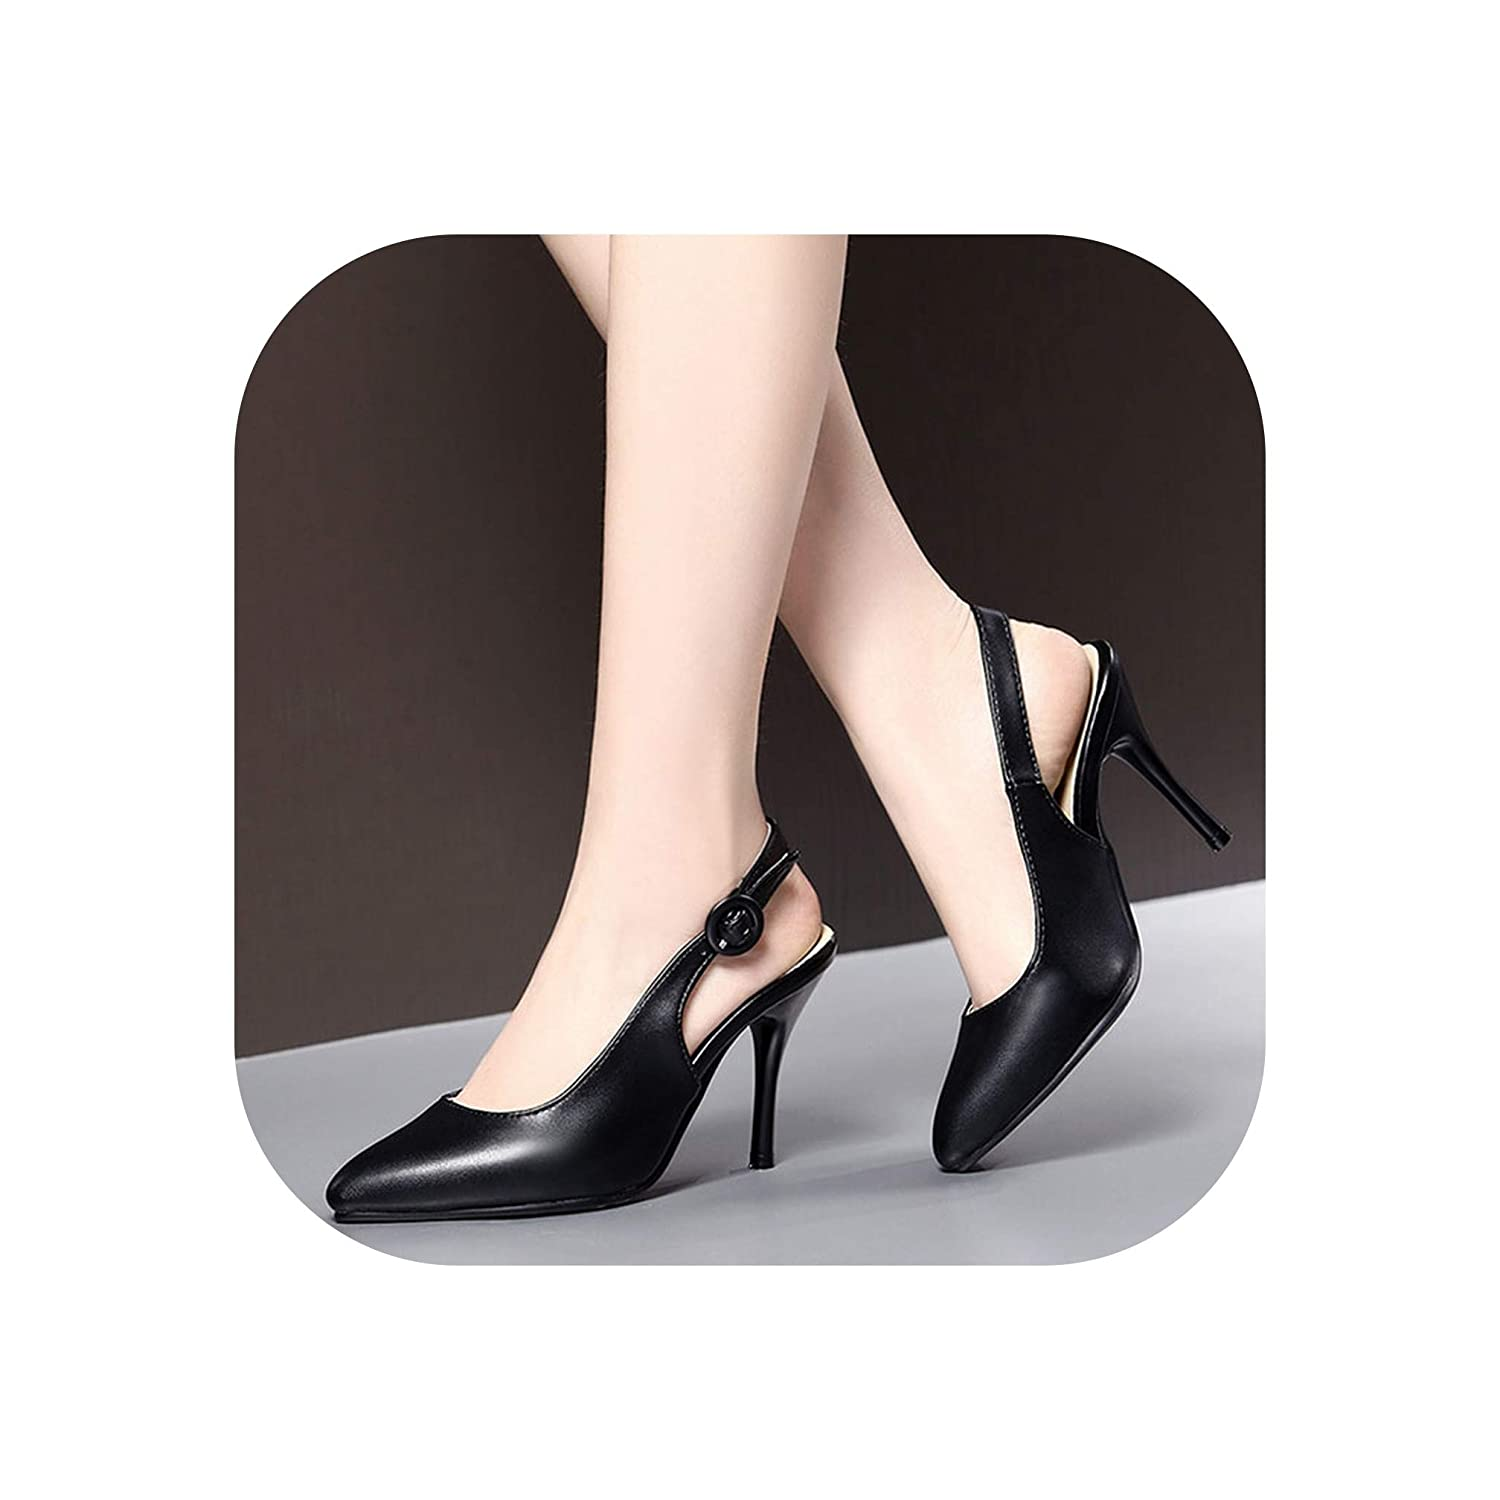 Black Summer Comfortable High Heel Pointed Toe Ladies Sandals shoes Woman Sexy shoes